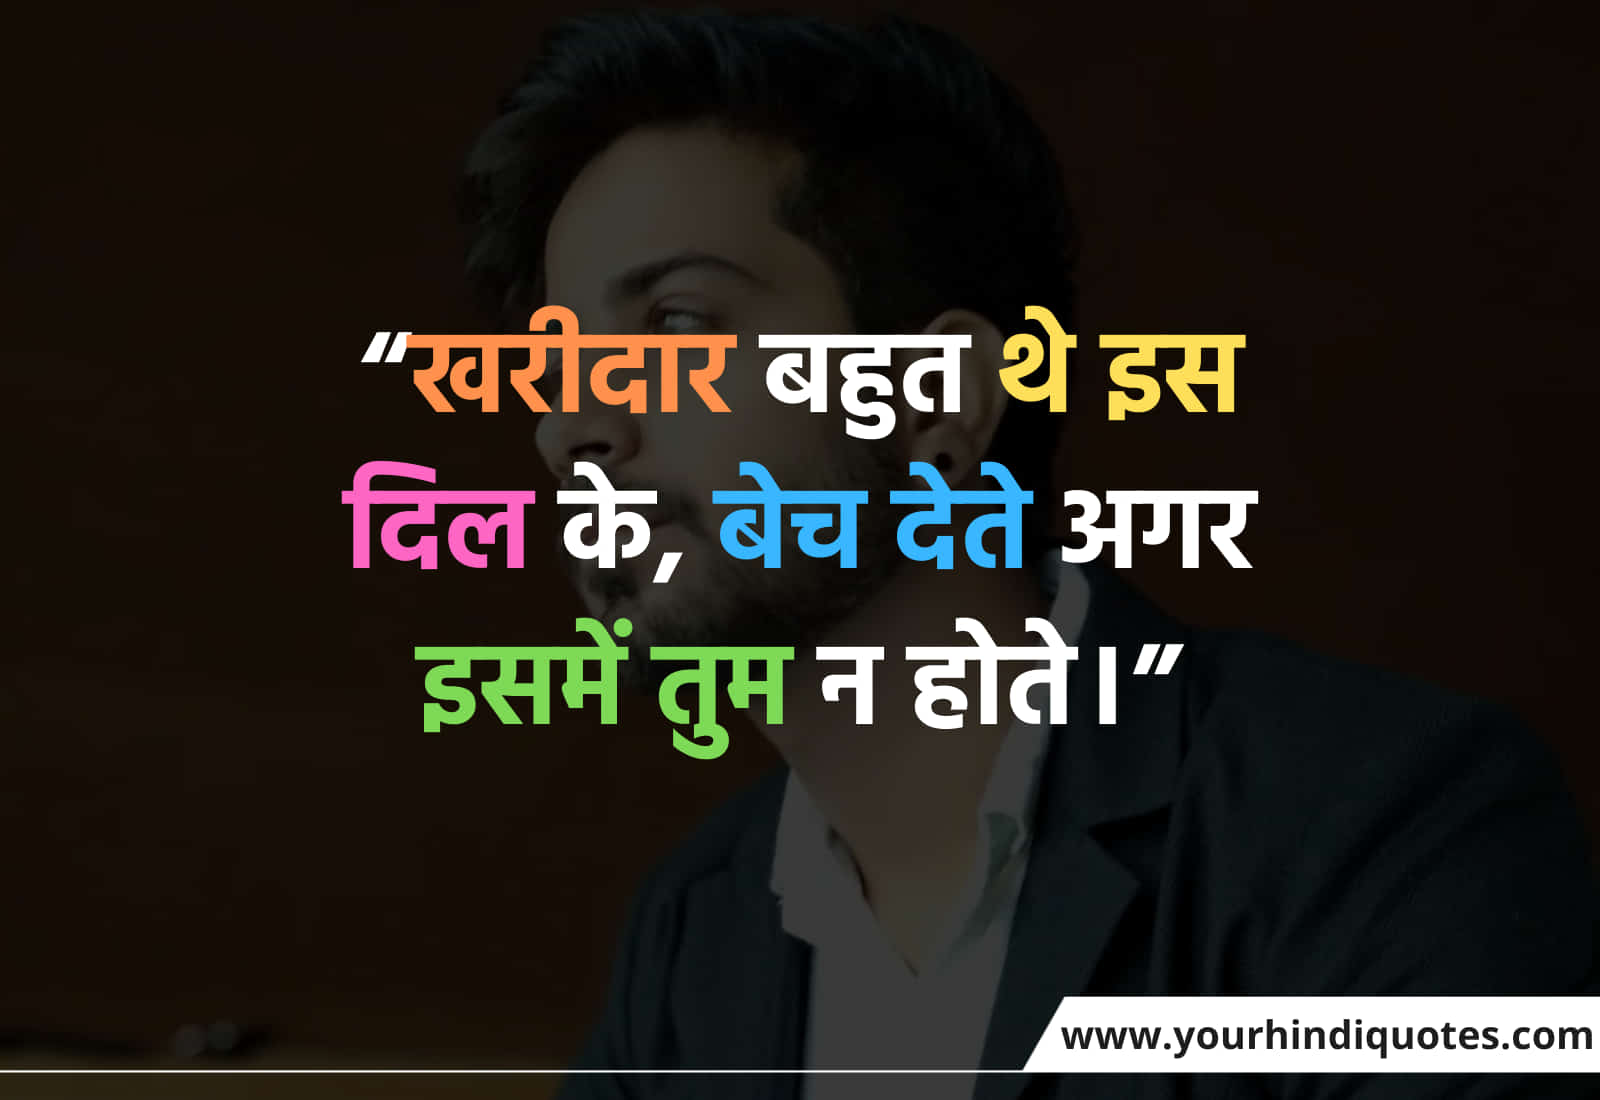 Hindi Positive Thought Of The Day